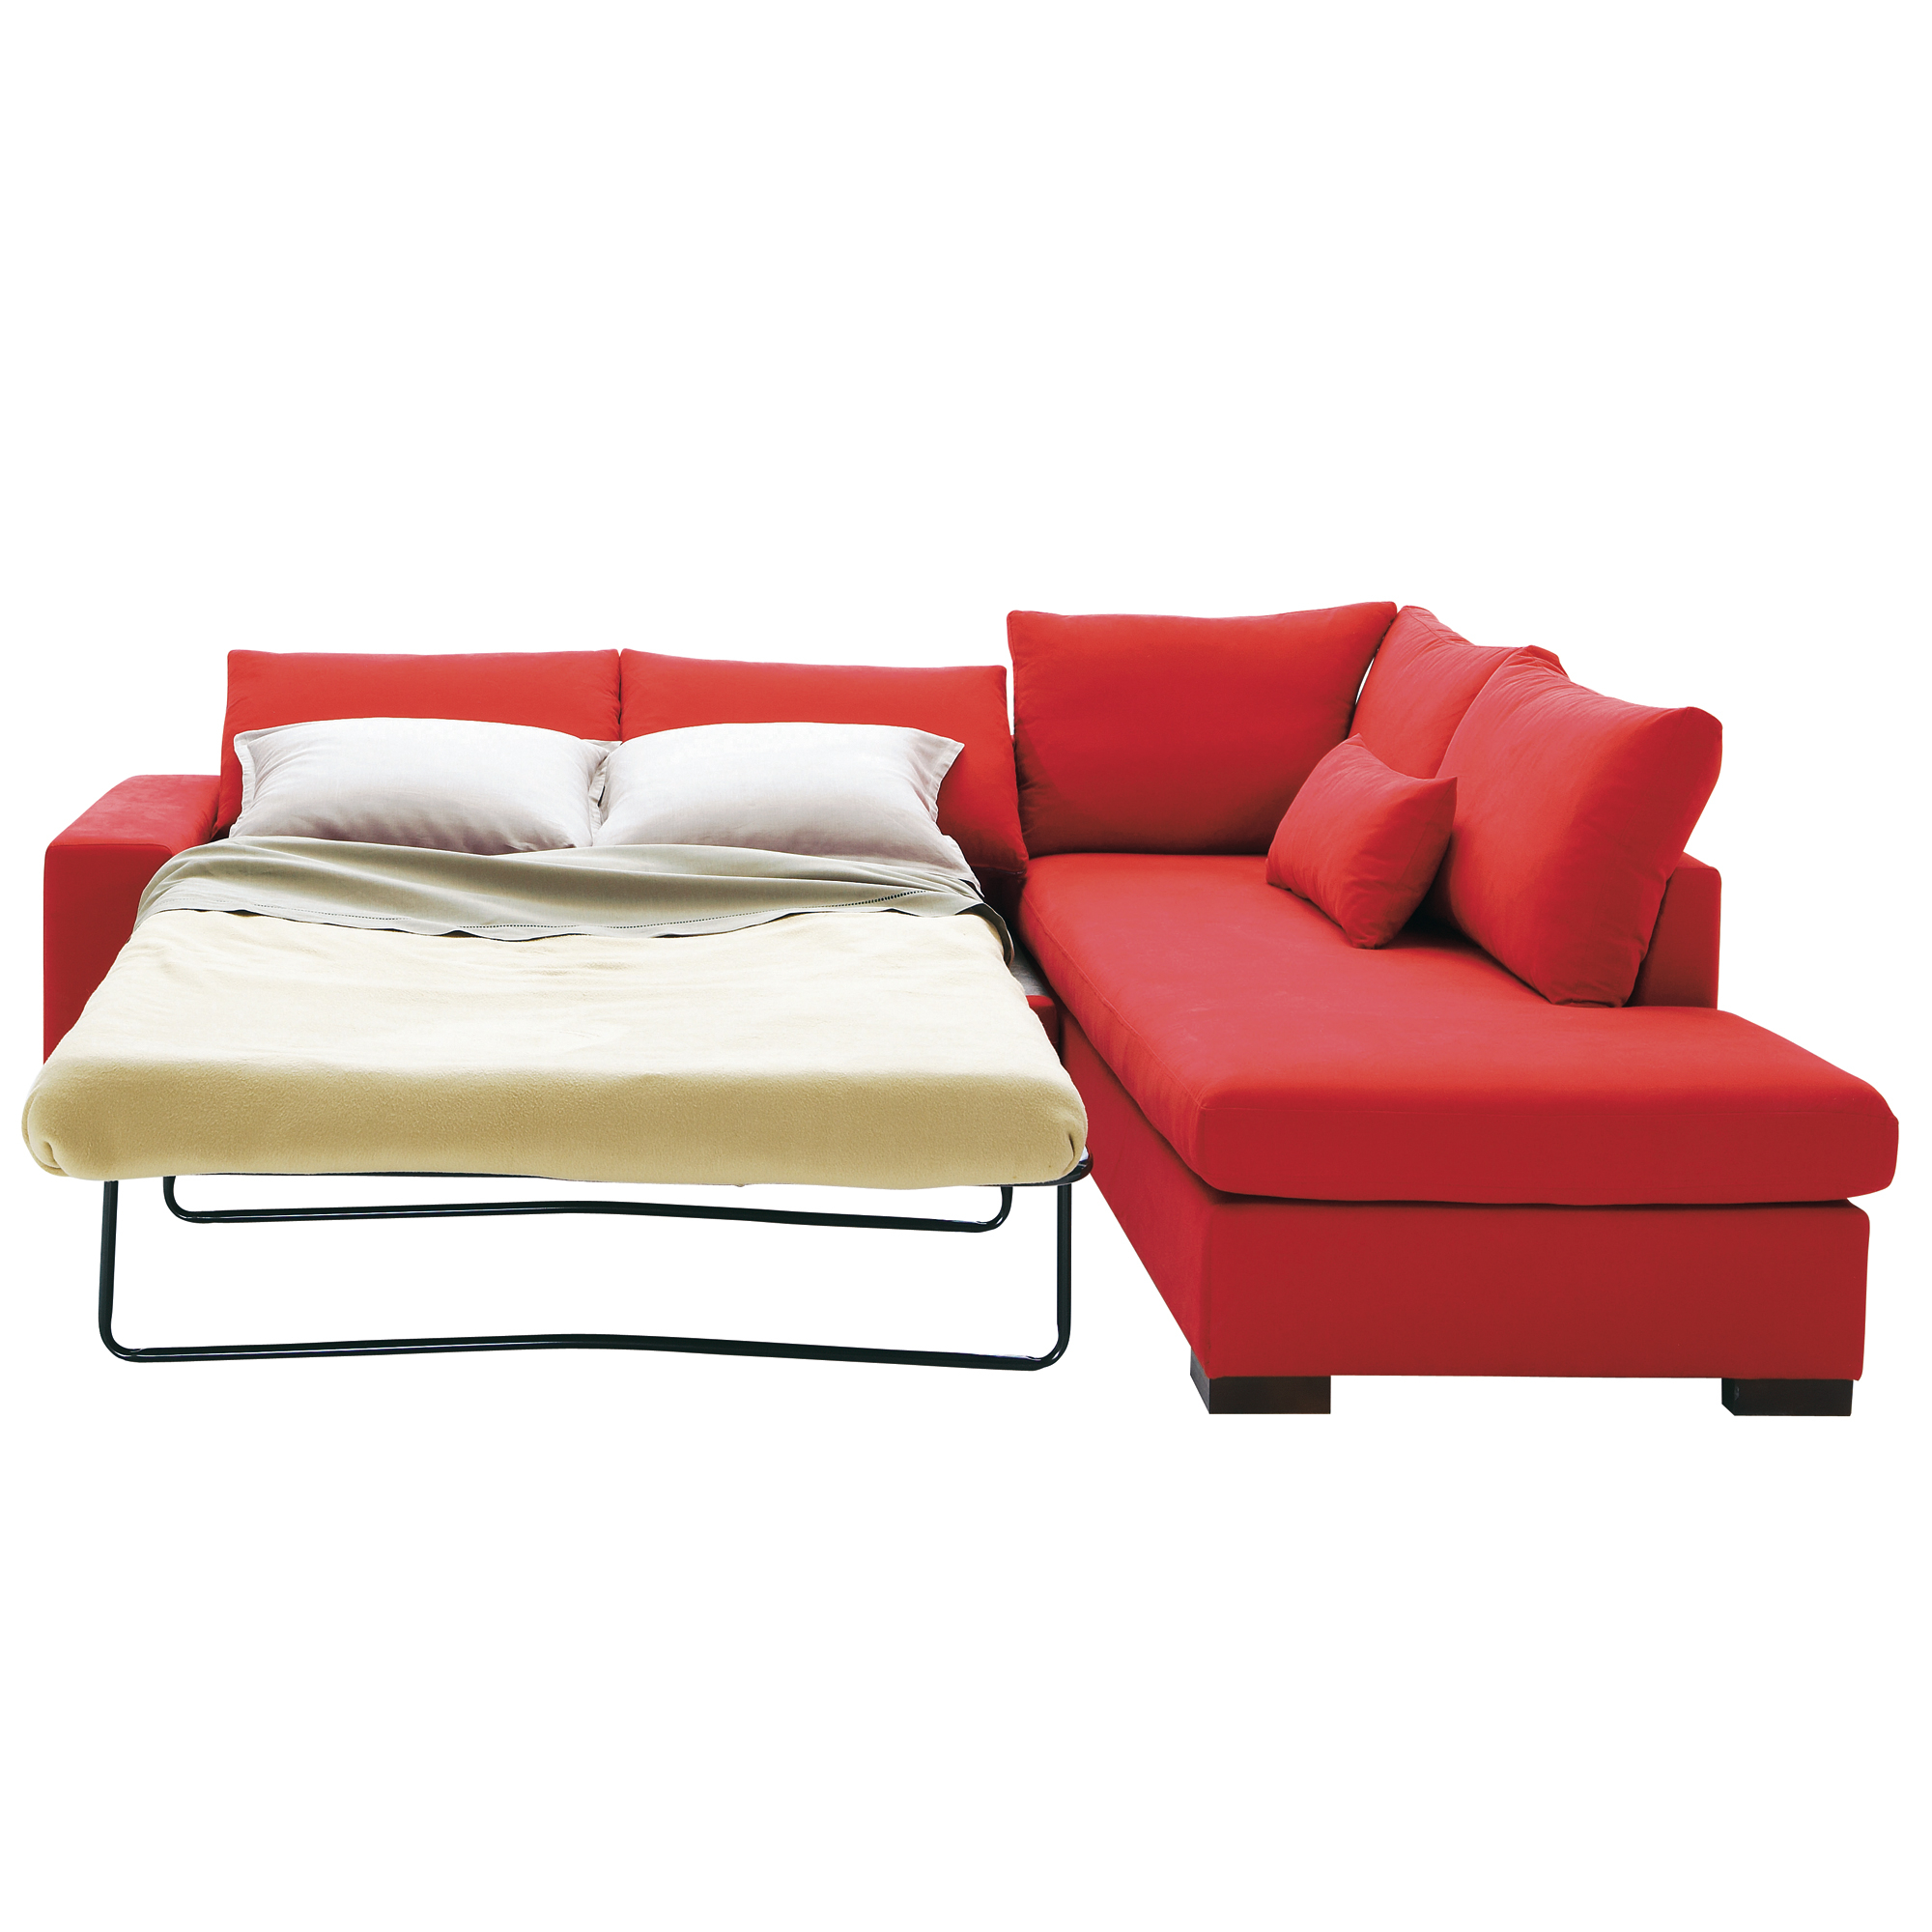 Canape convertible rouge - Canape convertible rouge ...